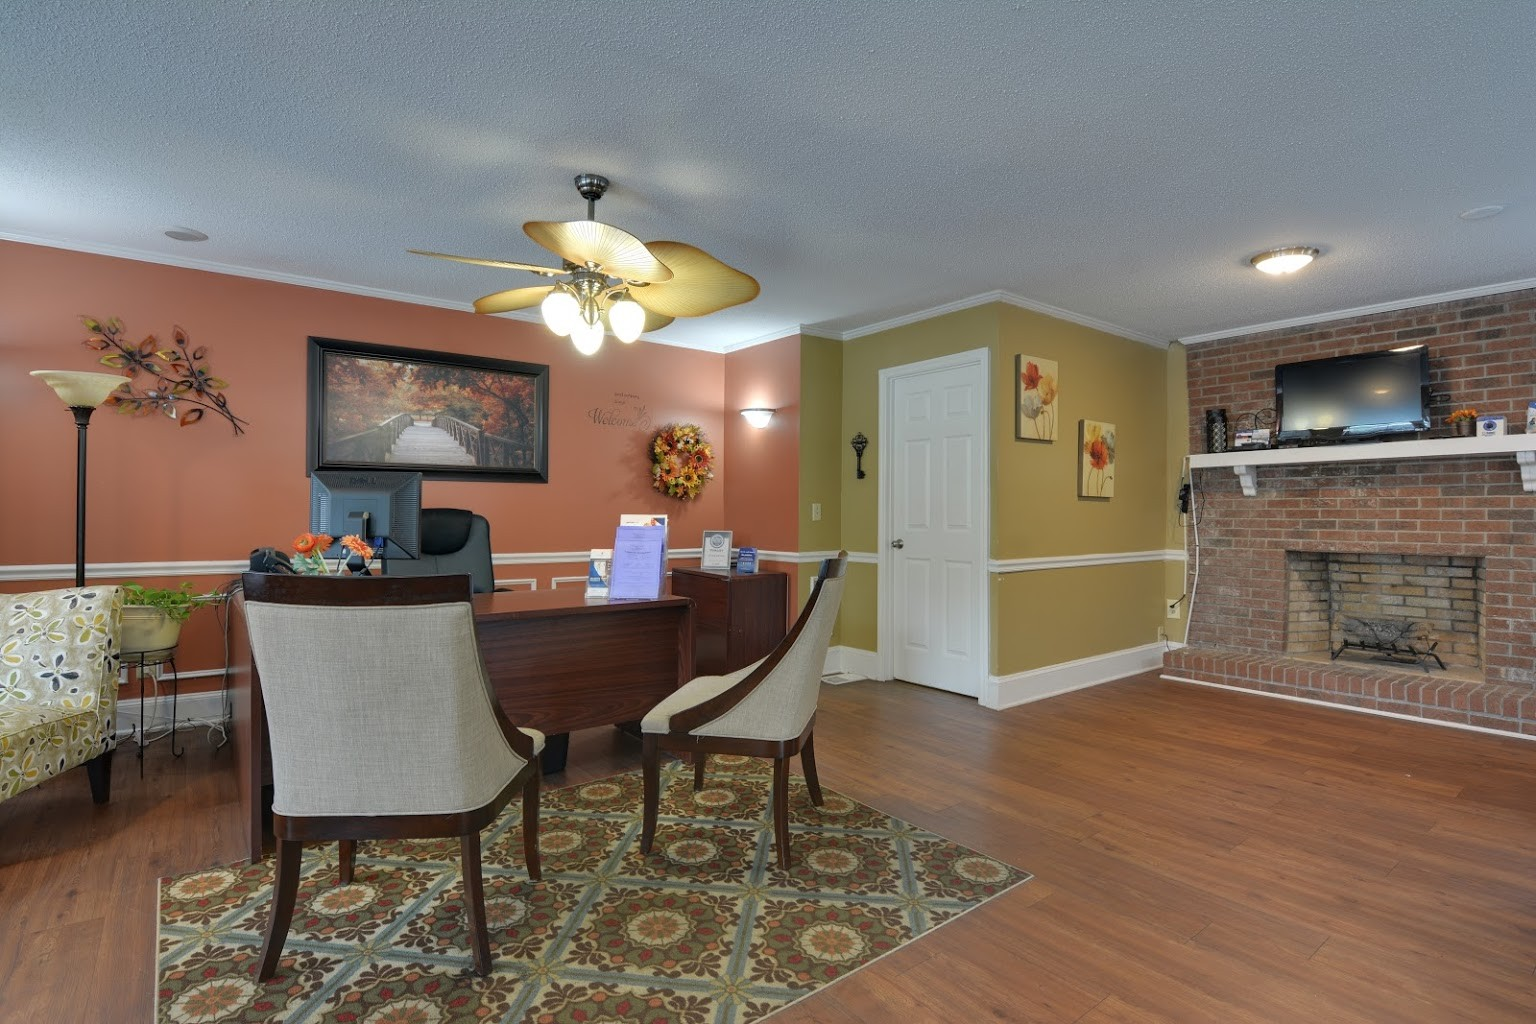 club house at Cross Creek Cove Apartments in Fayetteville, NC